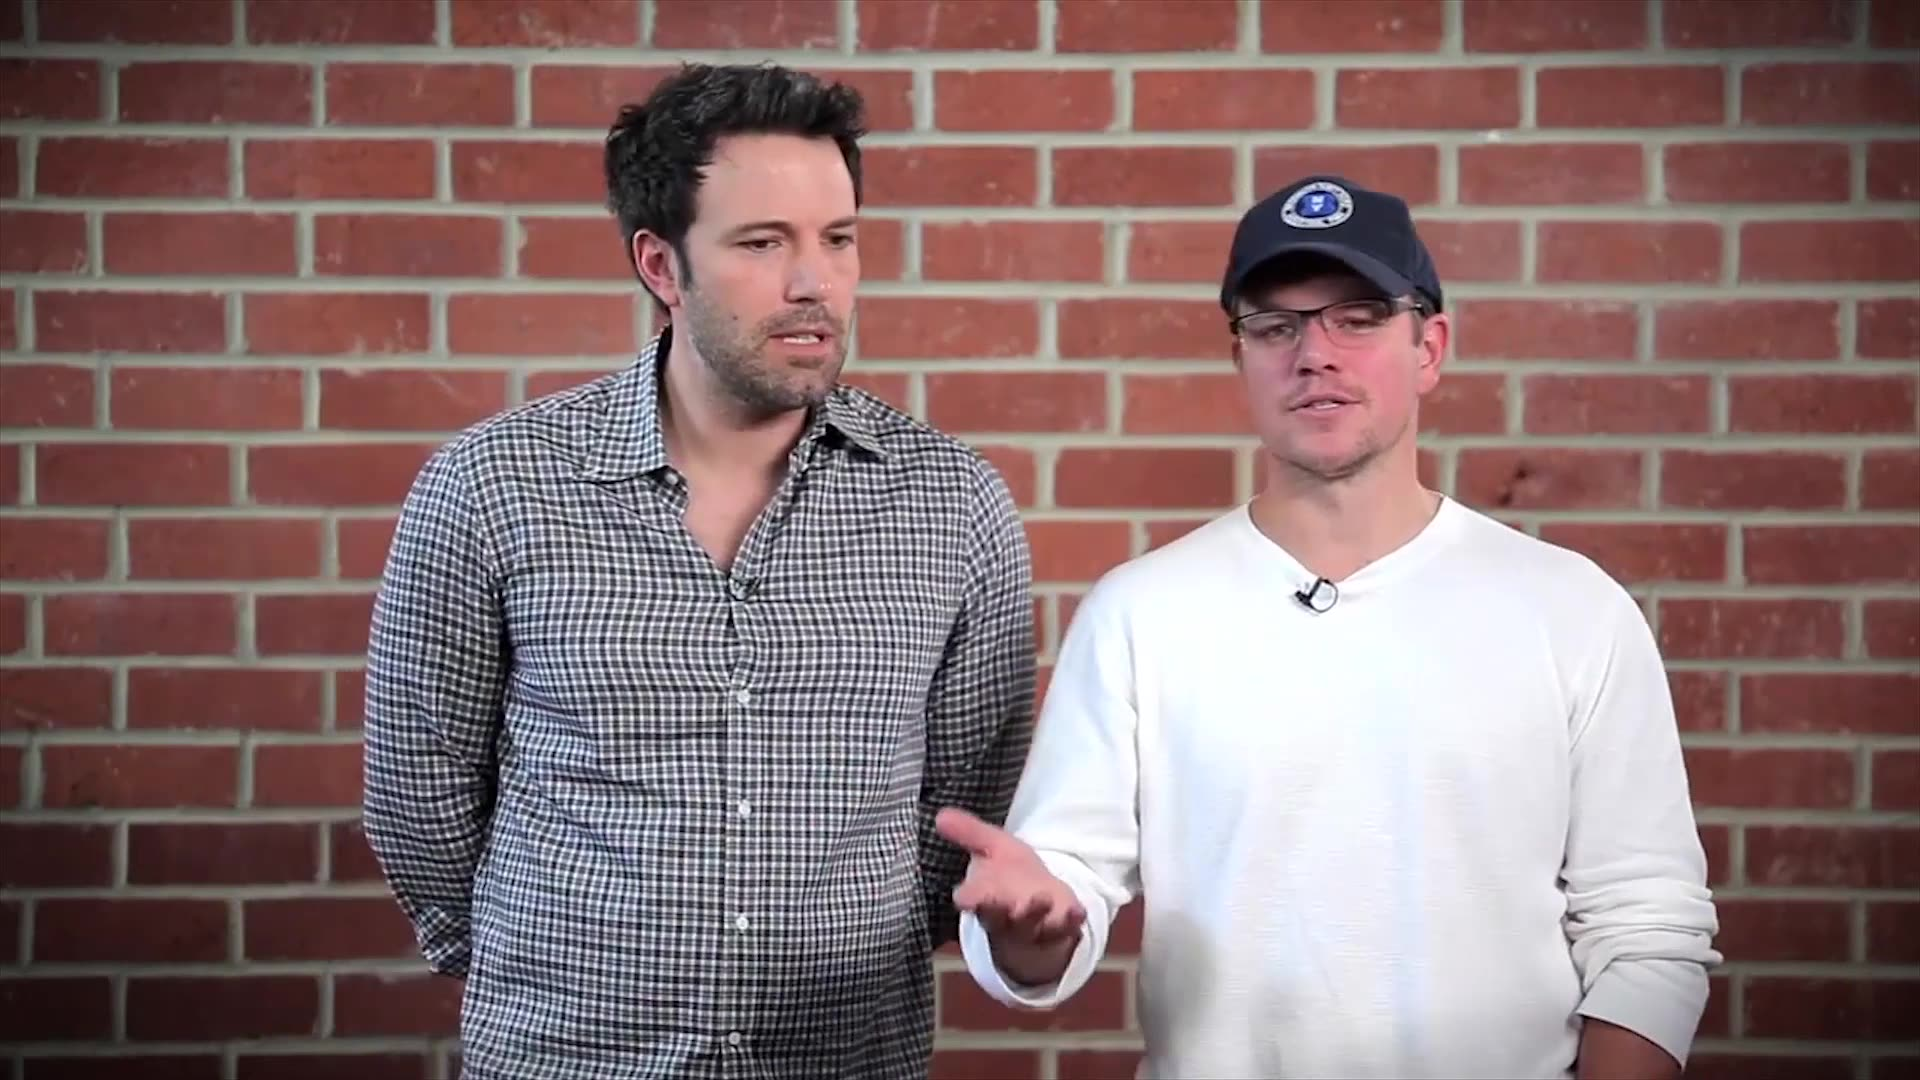 Ben Affleck and Matt Damon Bust Each Other's Chops For Charity